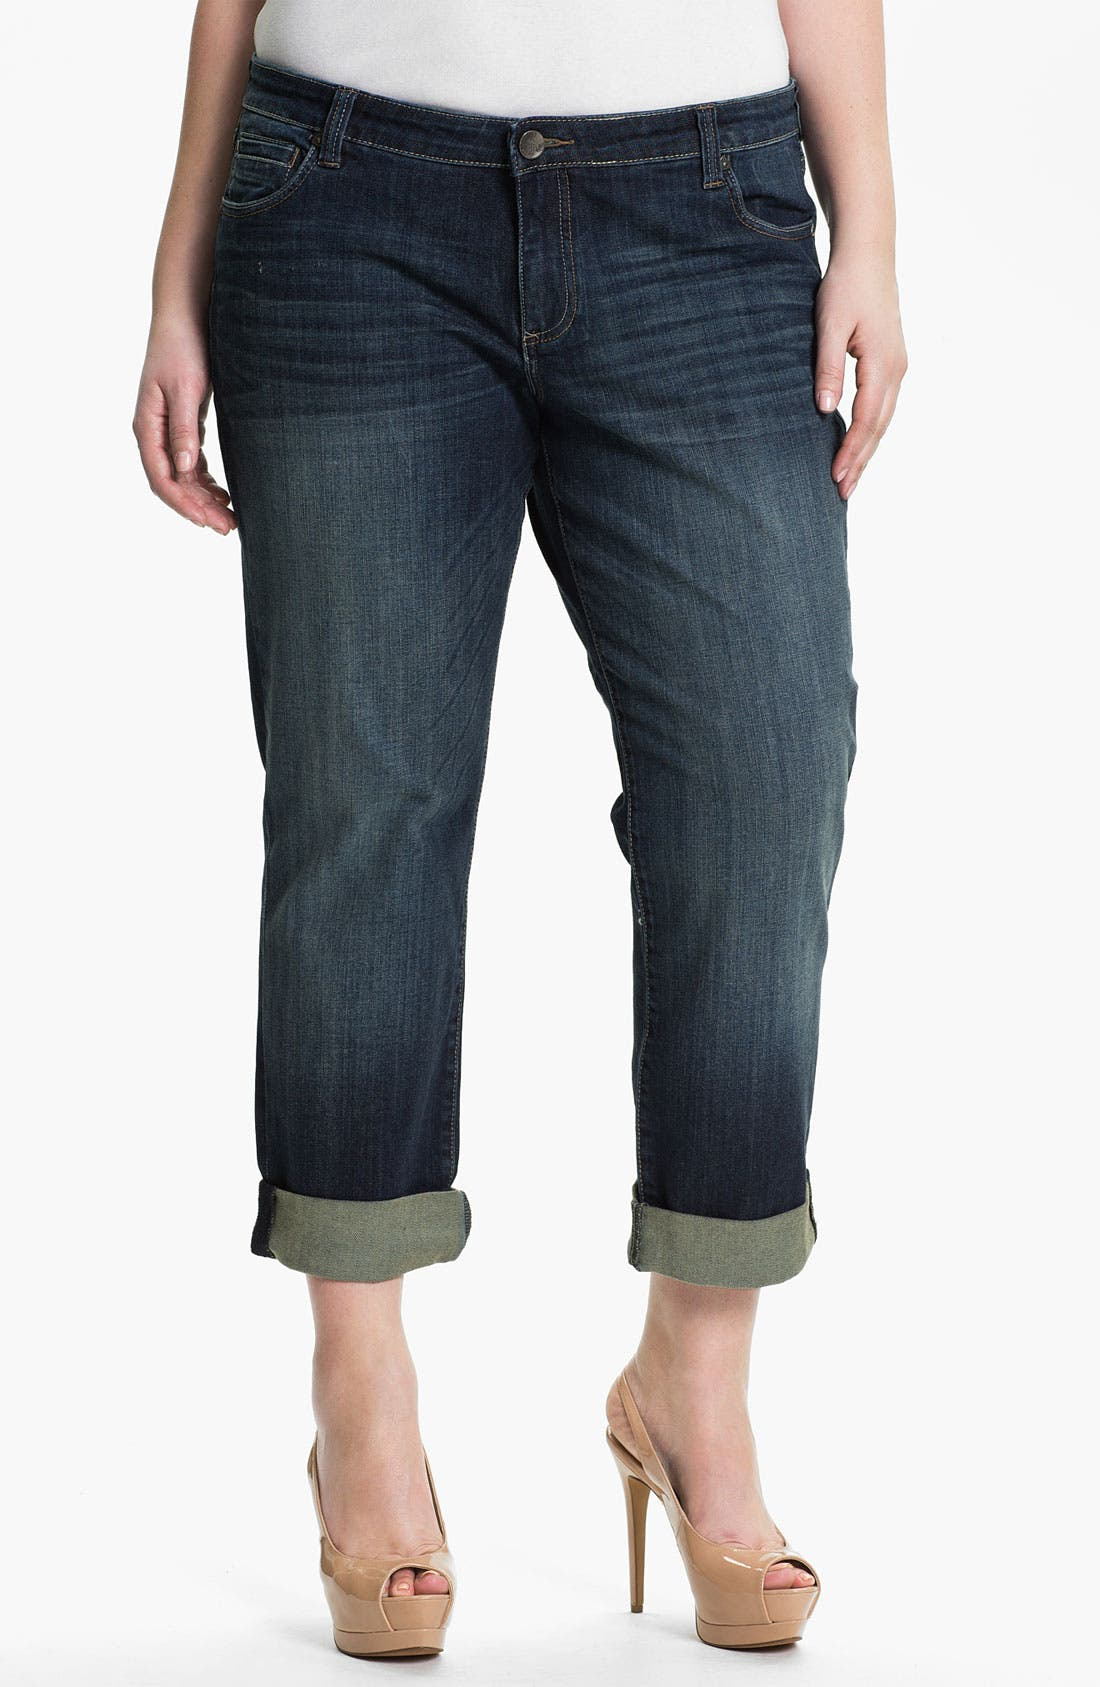 Alternate Image 1 Selected - KUT from the Kloth 'Catherine' Slim Boyfriend Jeans (Plus Size)